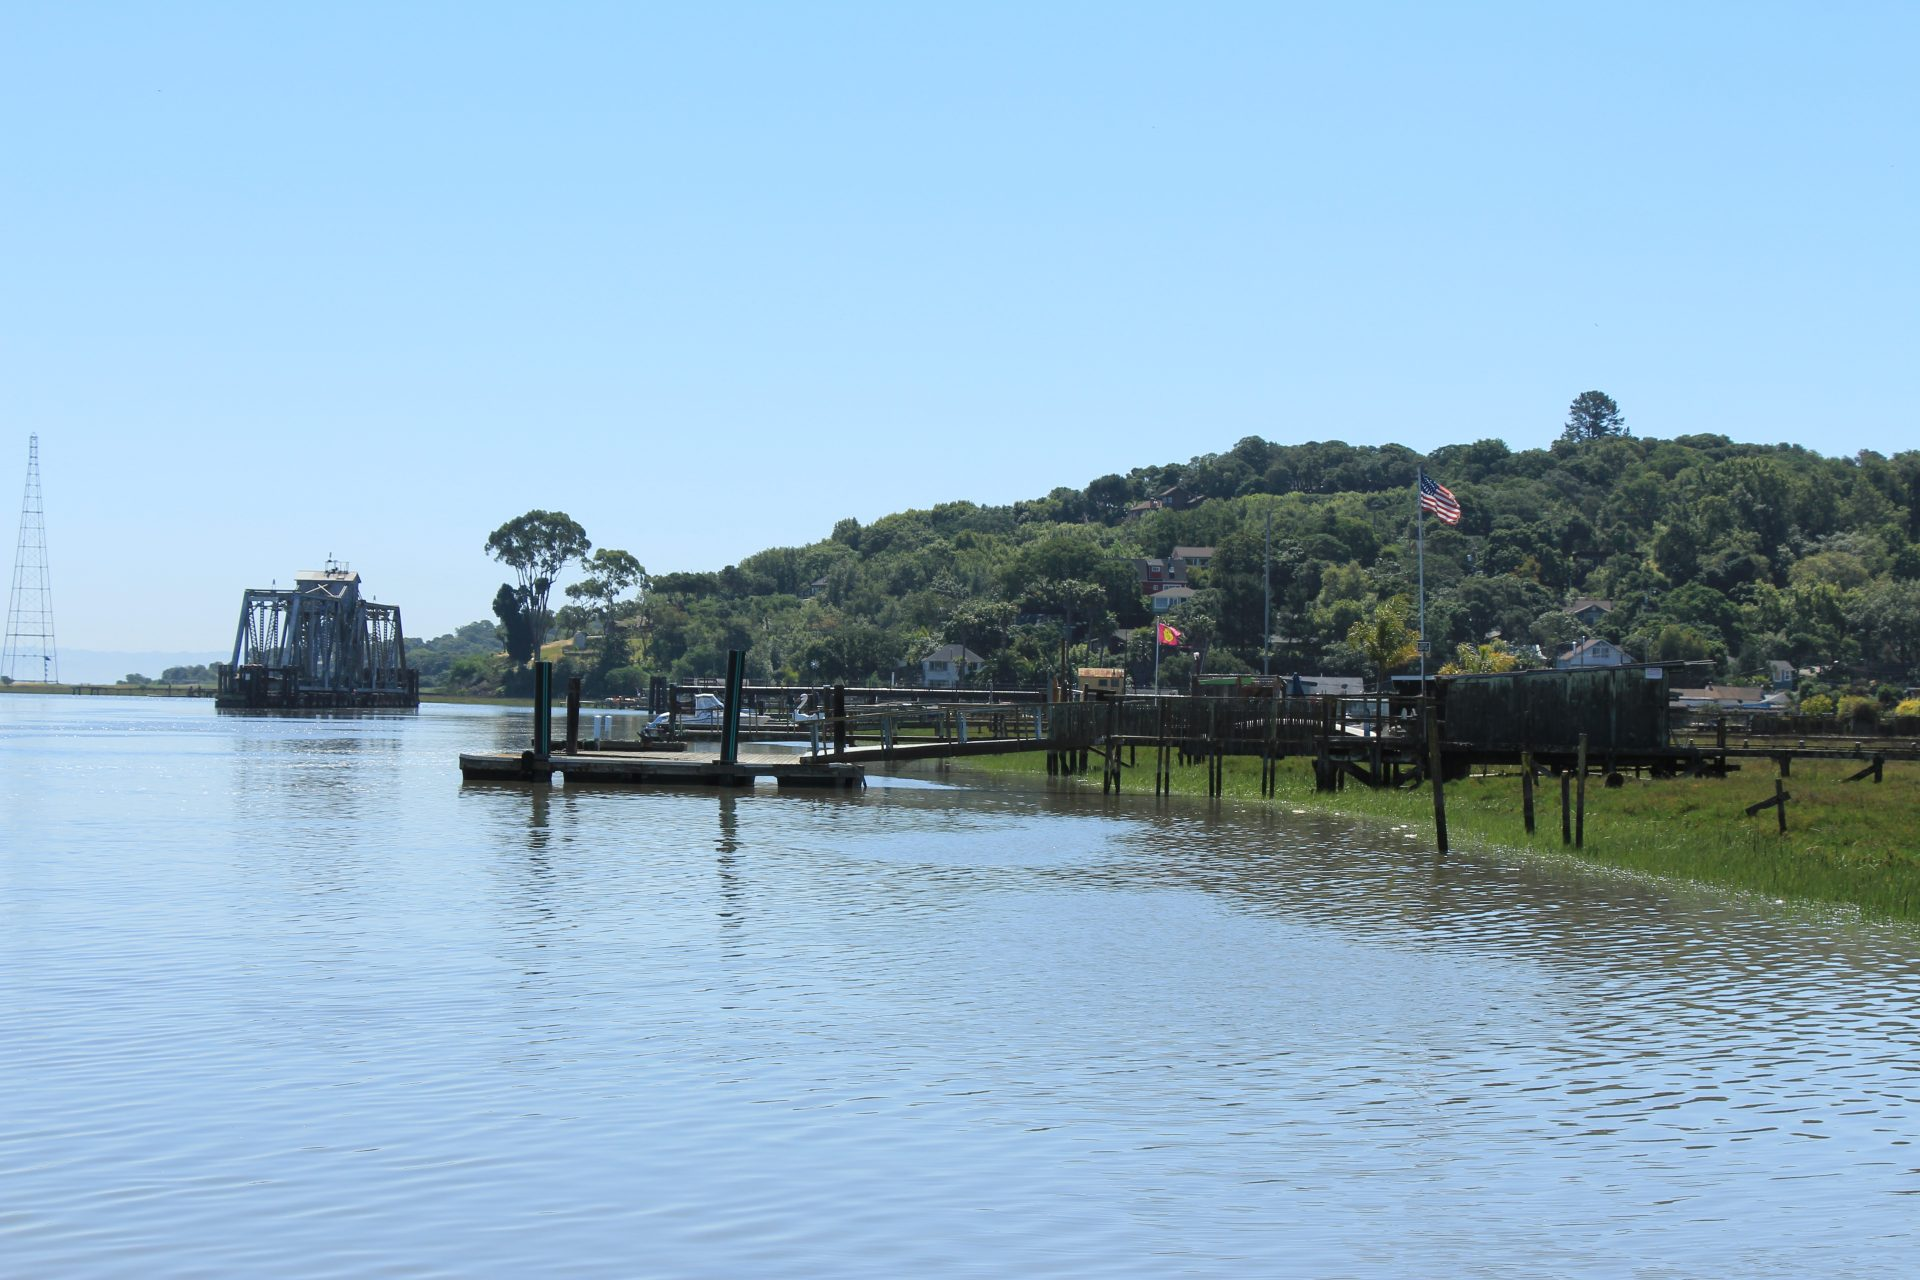 Water, pier and dock structure, forested hill in distance